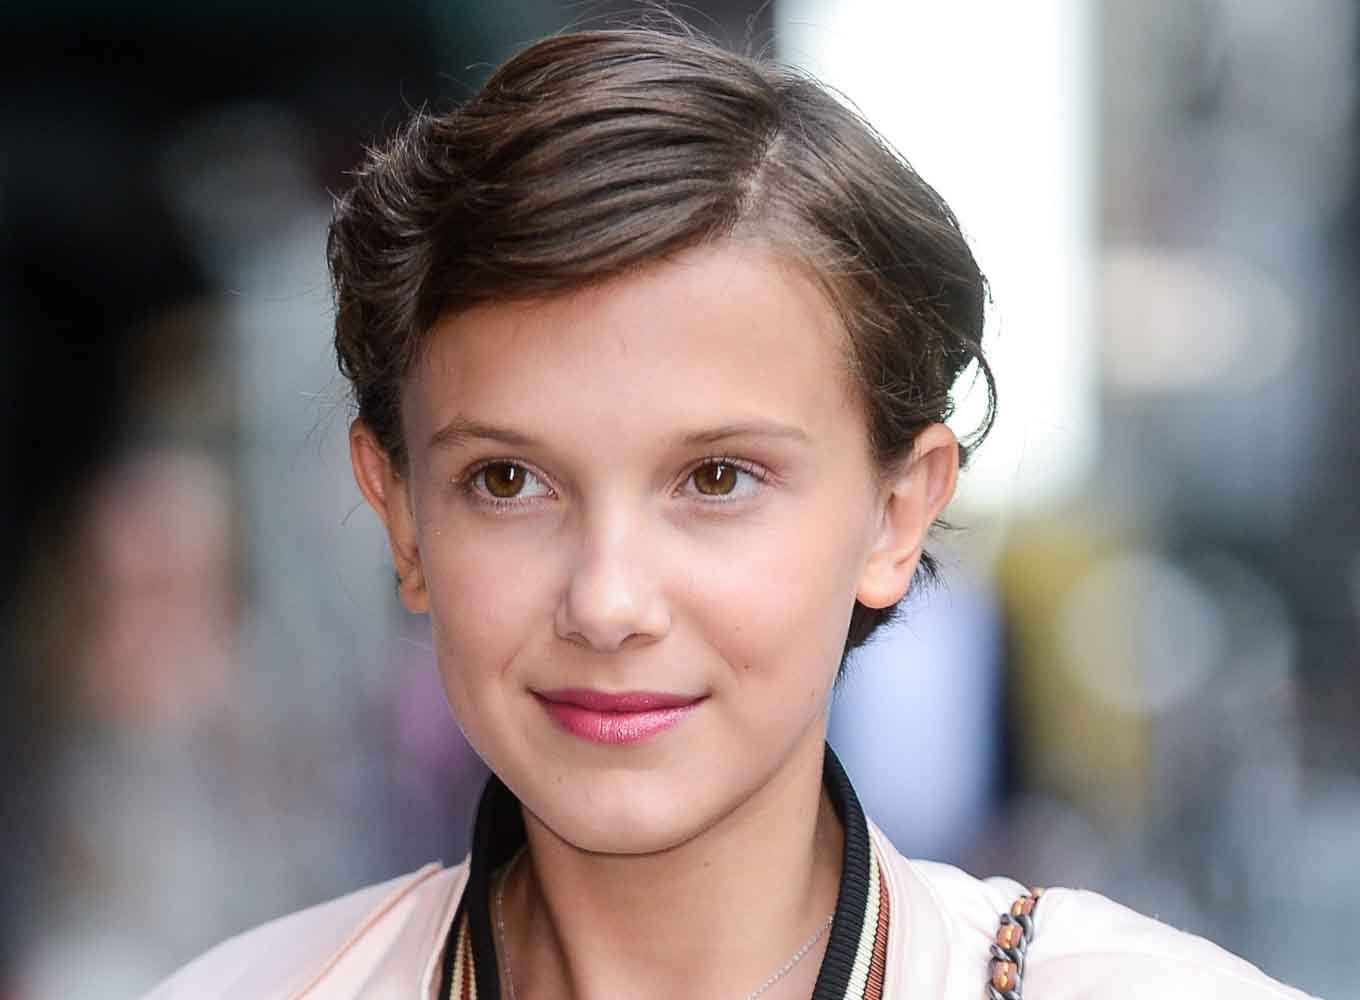 millie bobby brown - photo #23